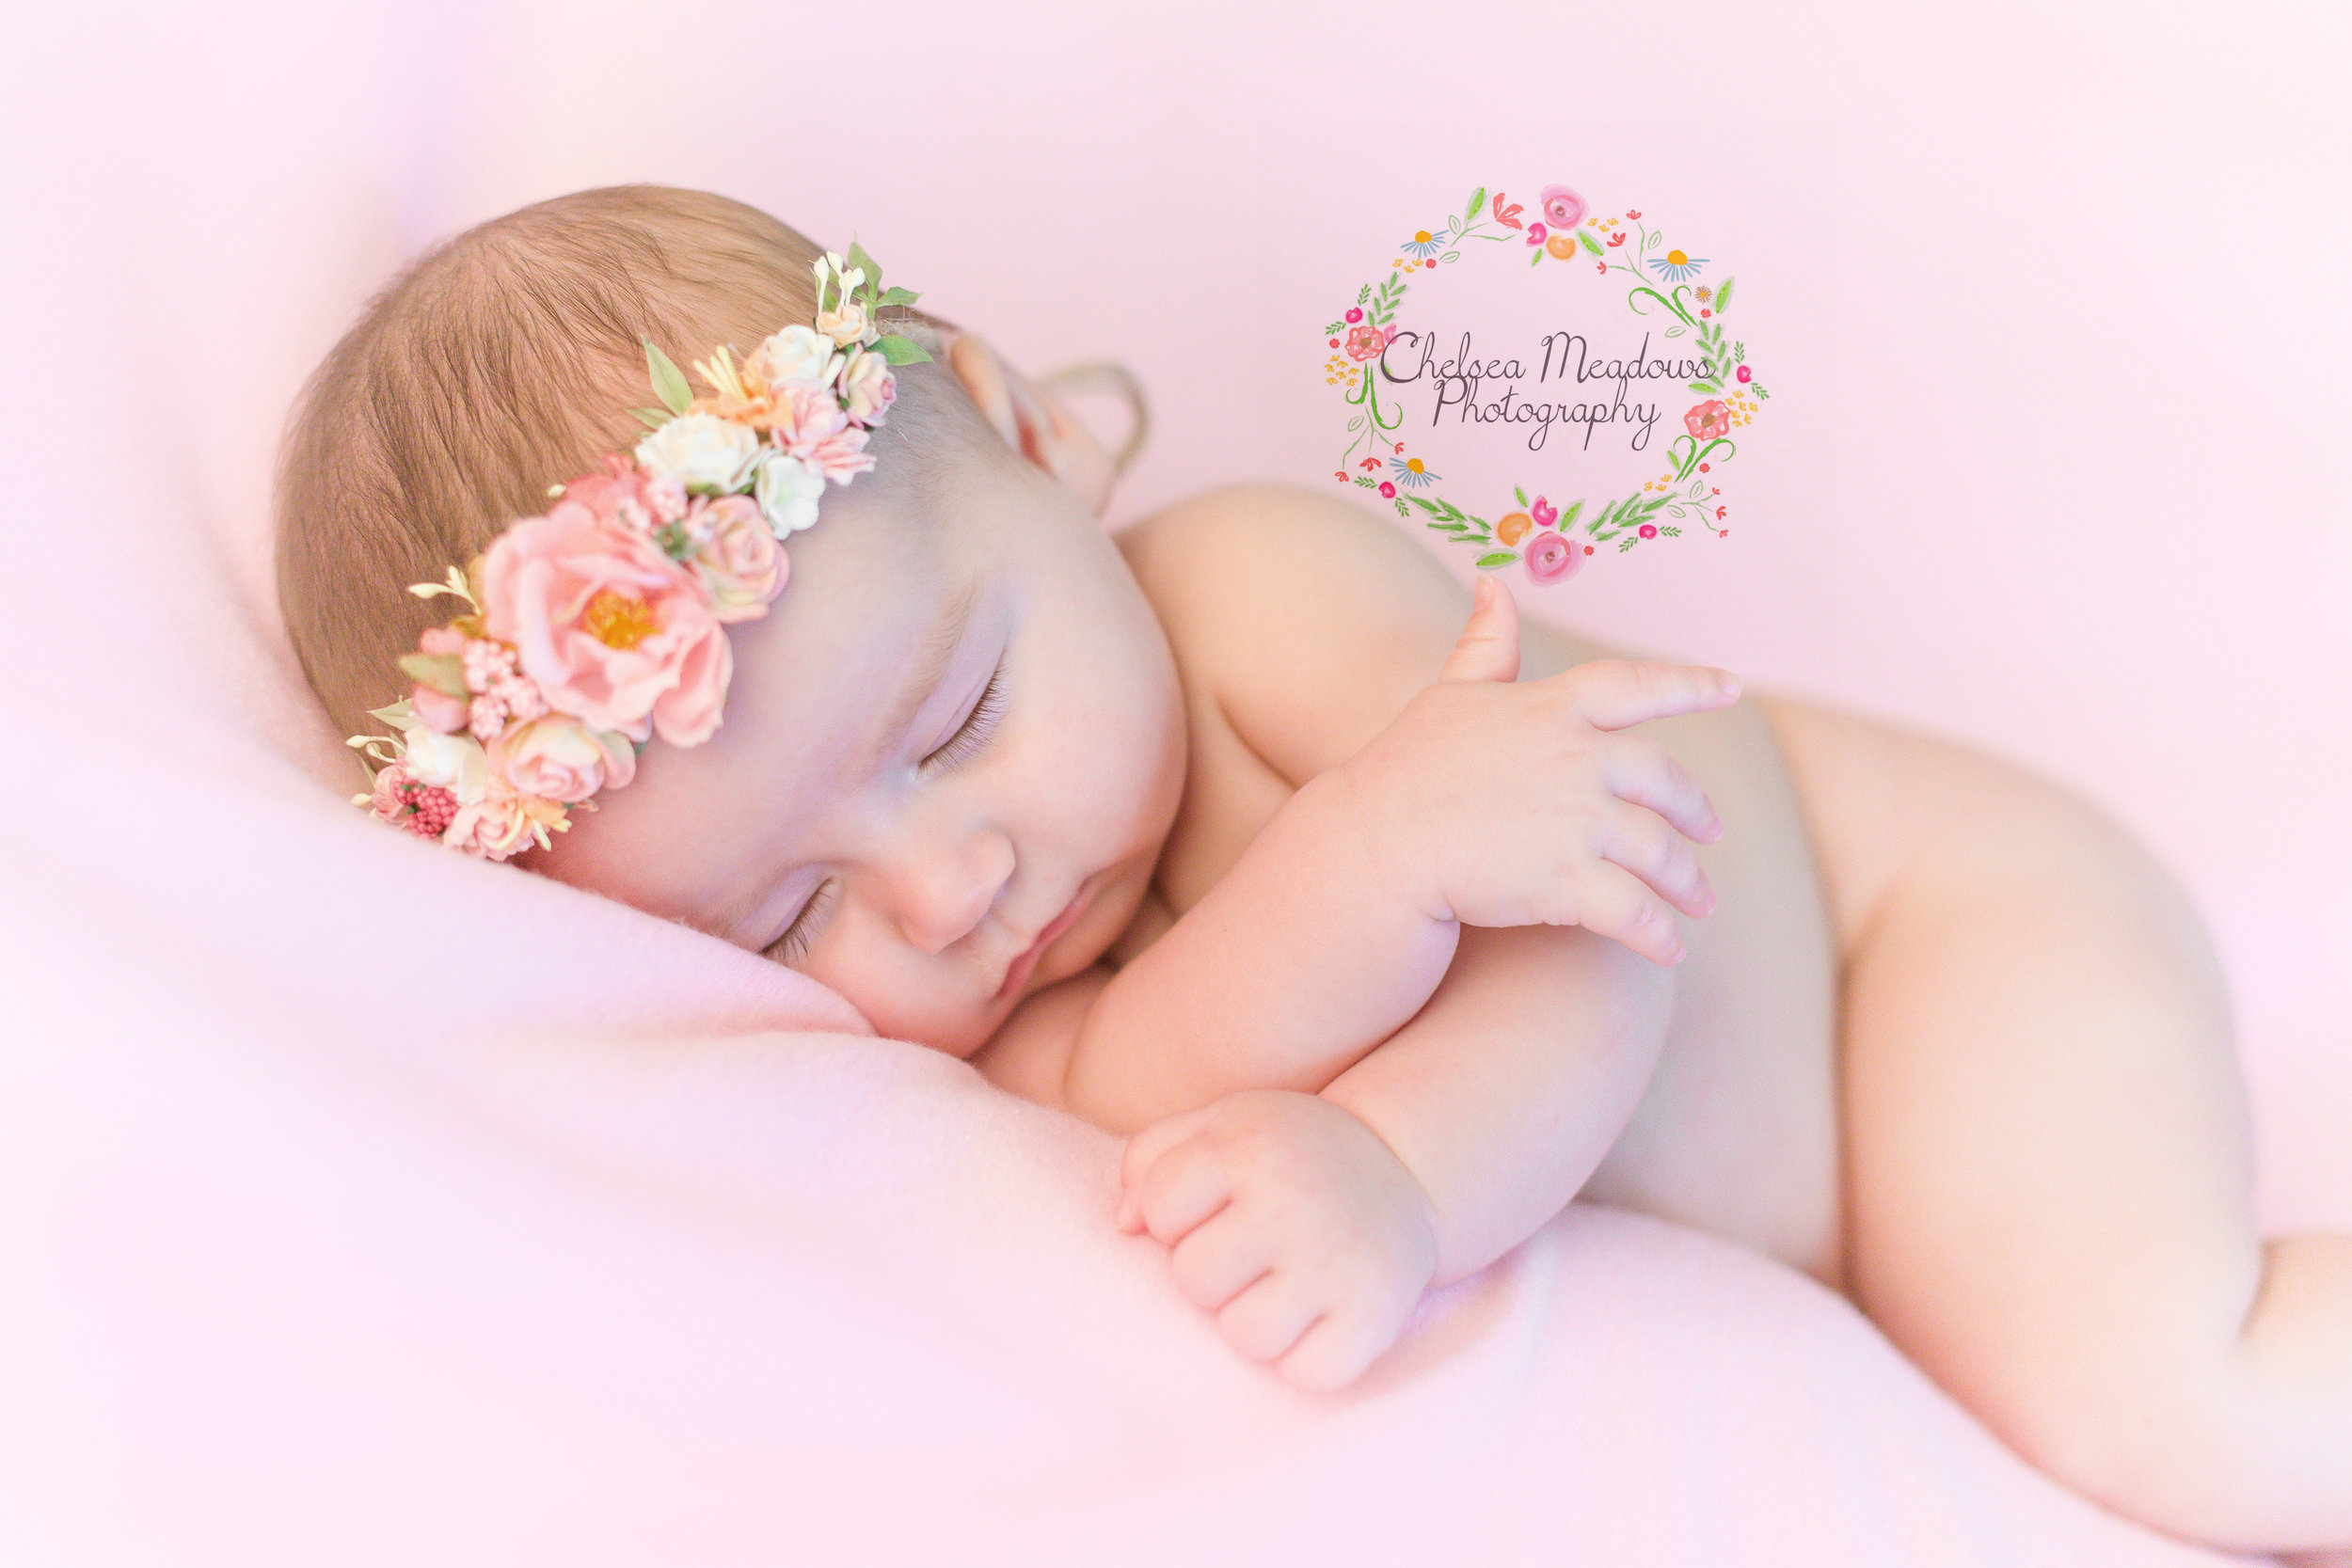 Ava's 2 Month Session - Chelsea Meadows Photography (52)_edited-1.jpg